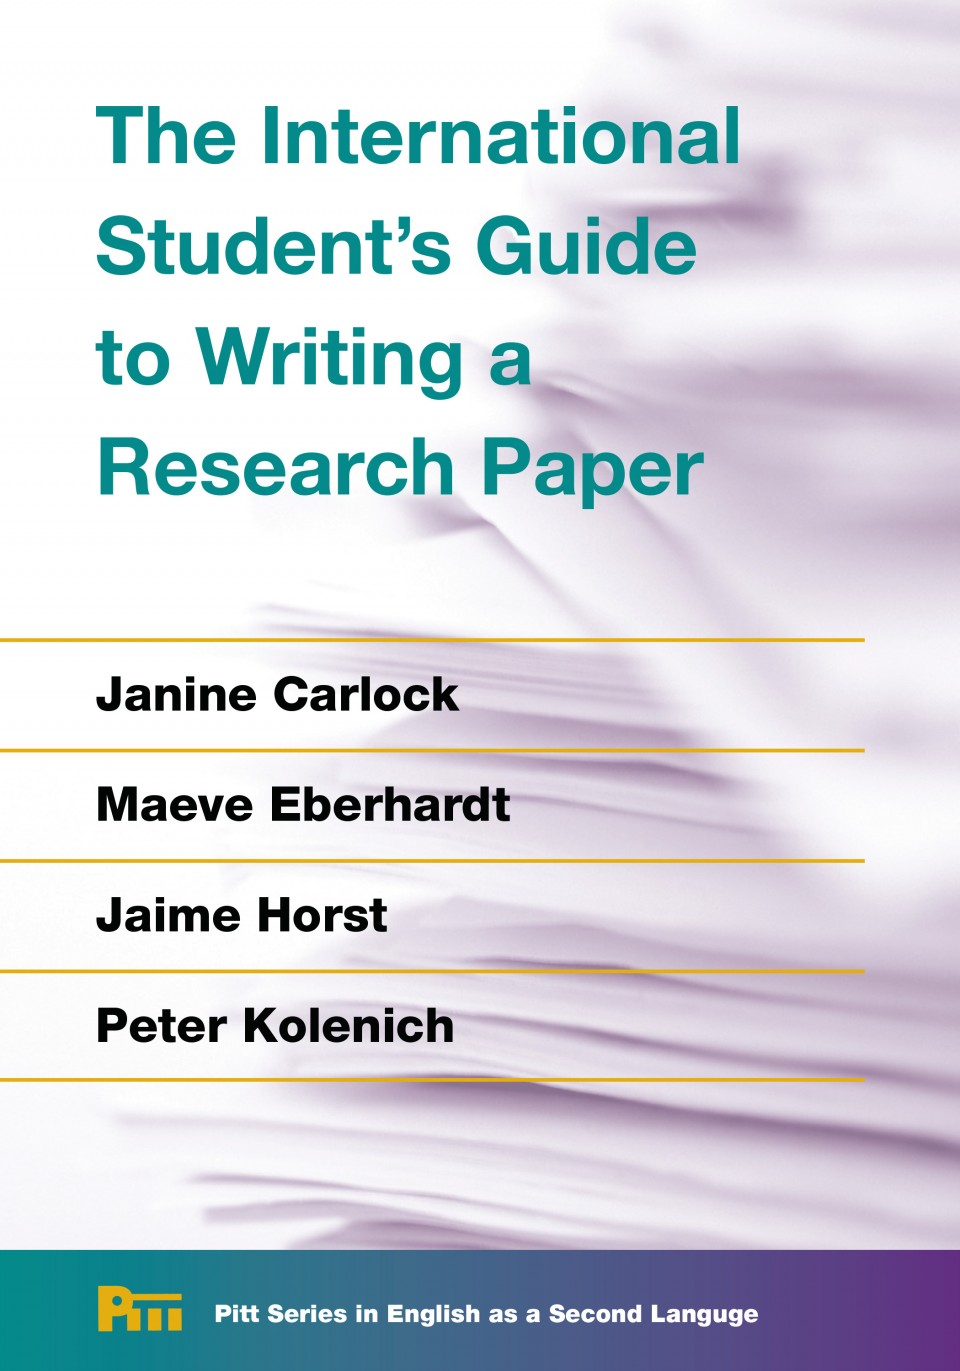 013 Research Paper Striking Writing Meme Papers A Complete Guide 15th Edition Pdf Free 16th 960